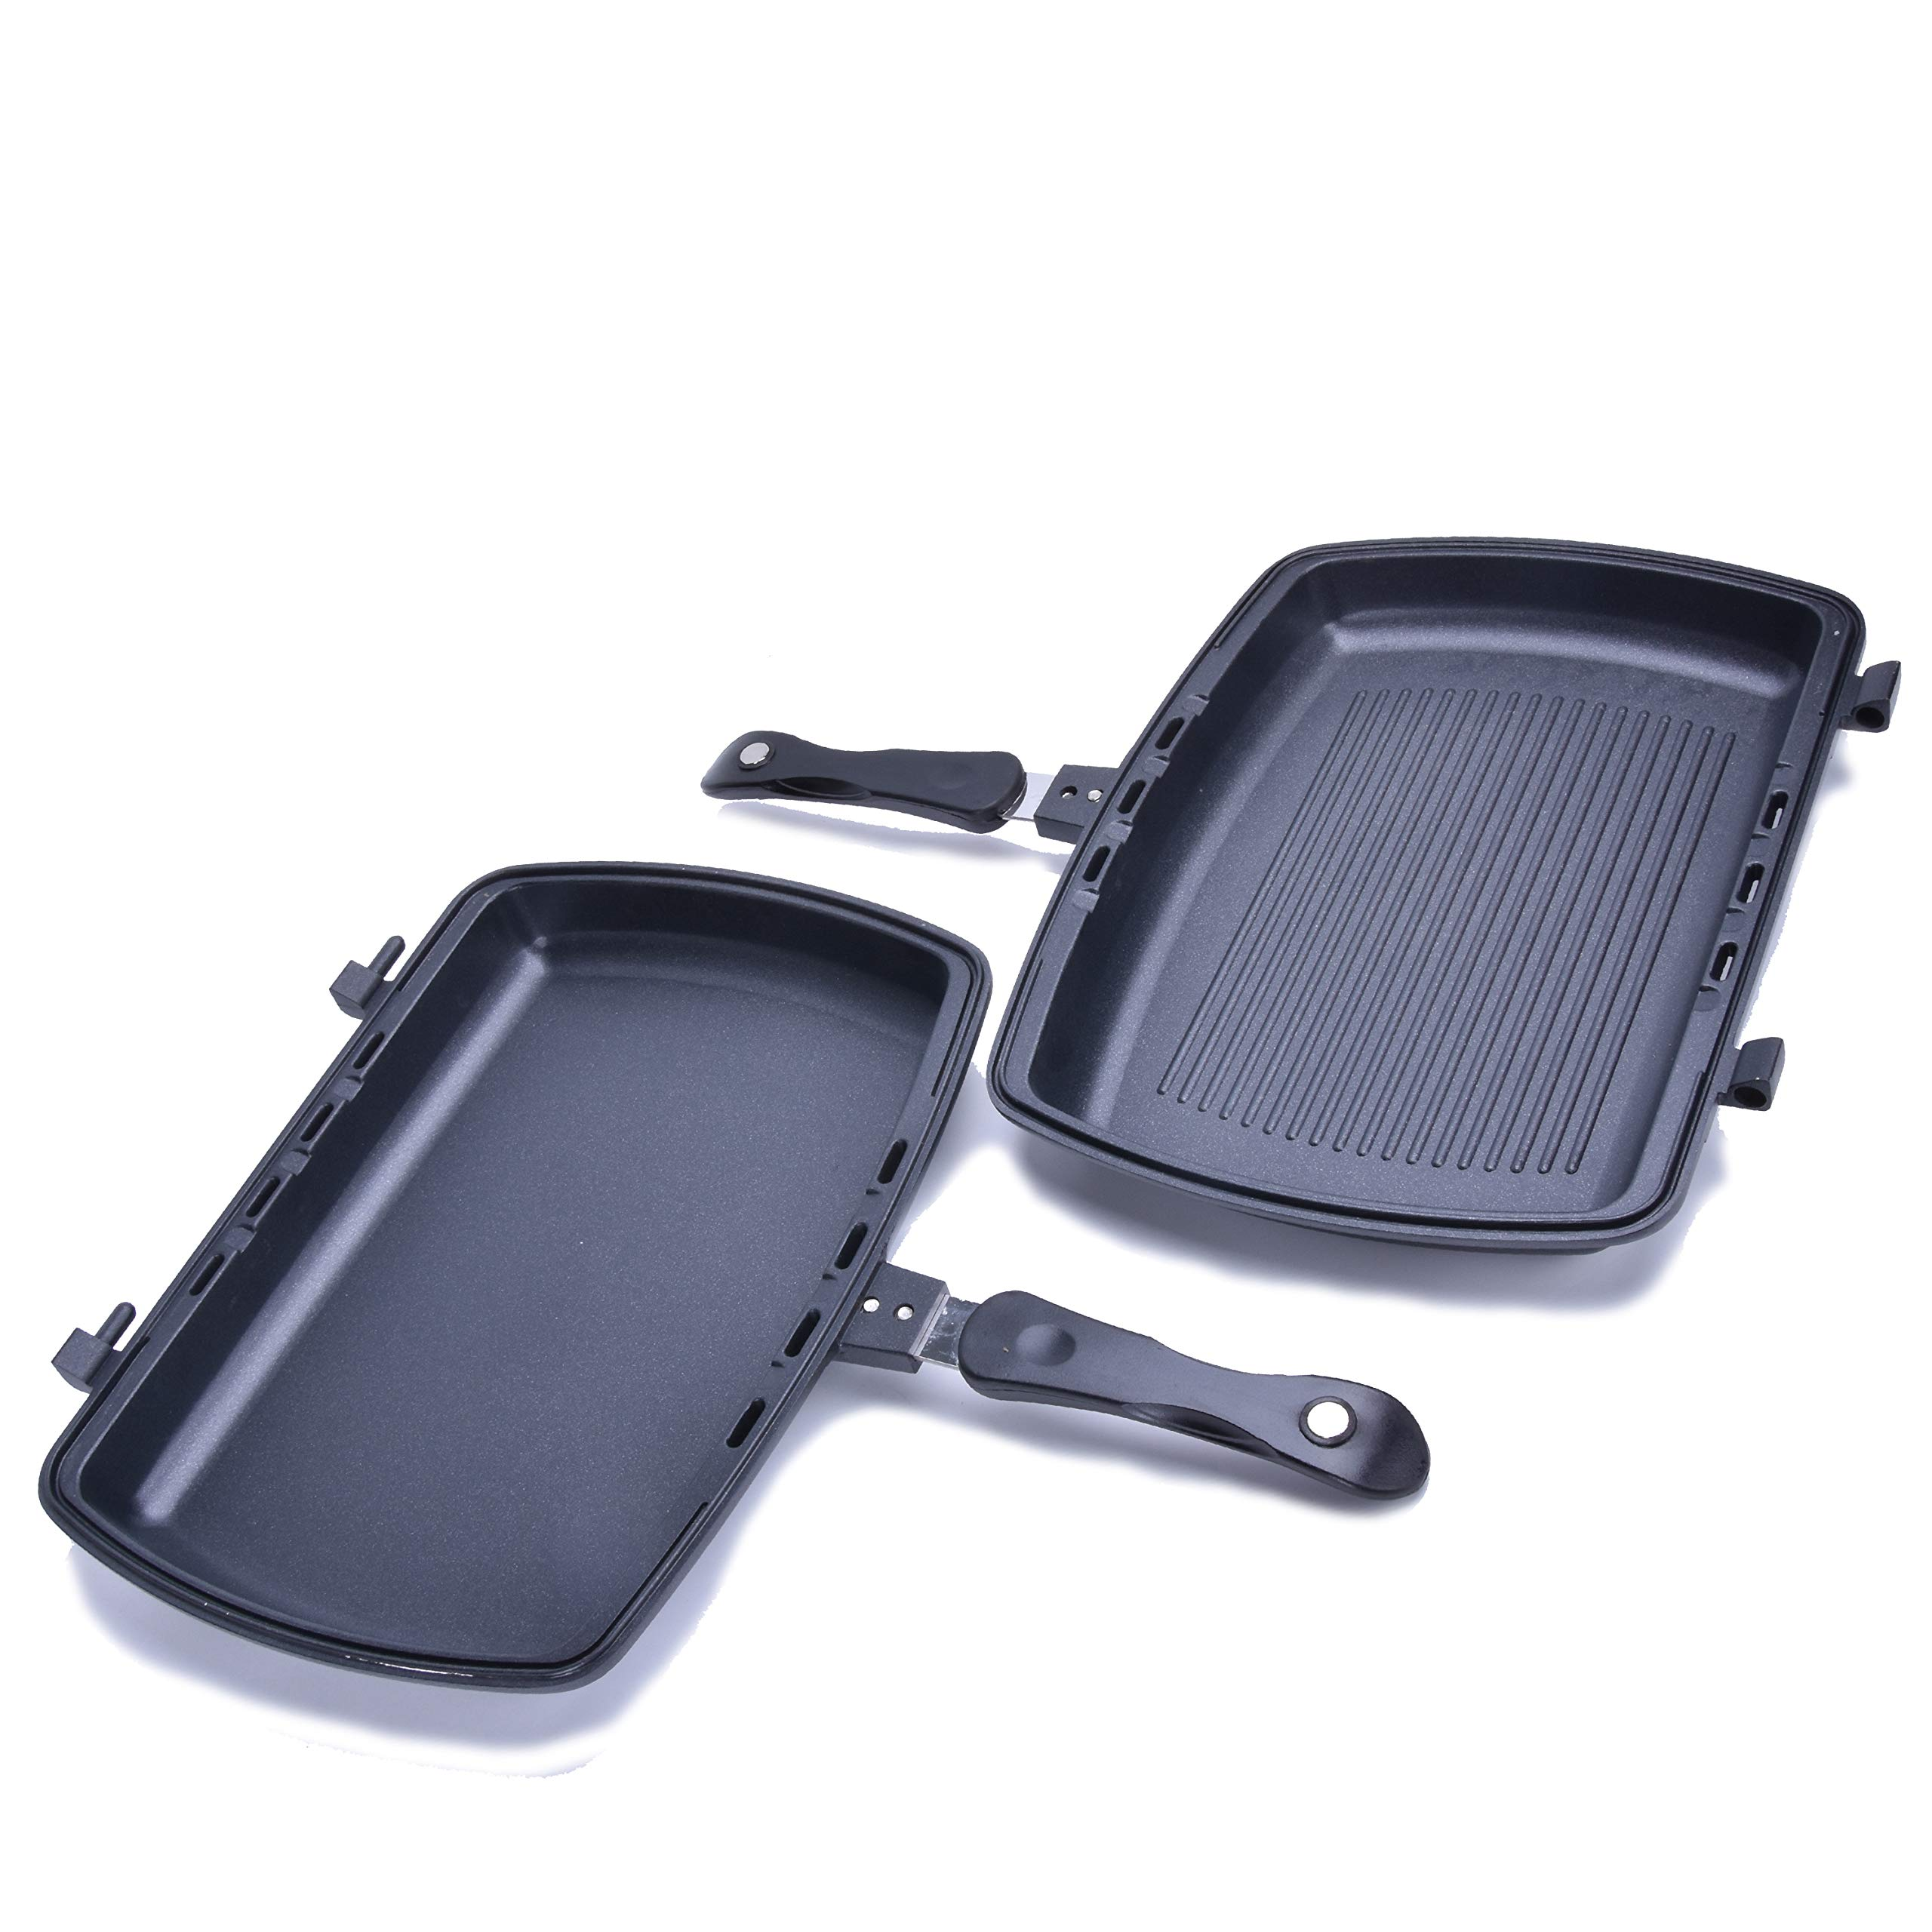 YONATA Double Sided Portable BBQ Grill Pan,Separate Detachable Double Pan Nonstick Barbecue Plate For Indoor and Outdoor Cooked Chicken,Fish,Egg by YONATA (Image #3)